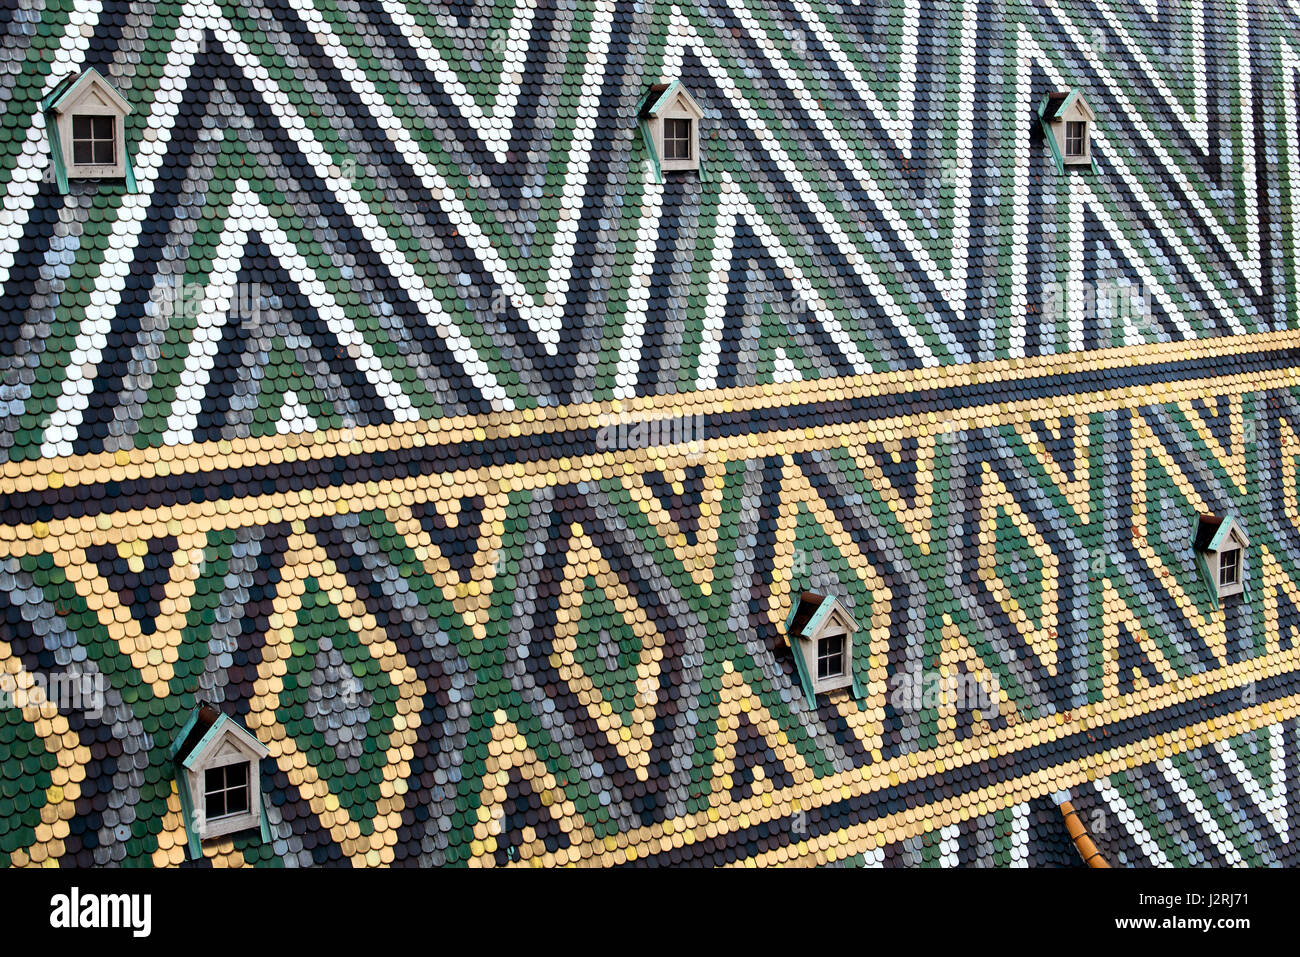 Close-up photography. Stephansdom roof fragments. Vienna. Austria. - Stock Image